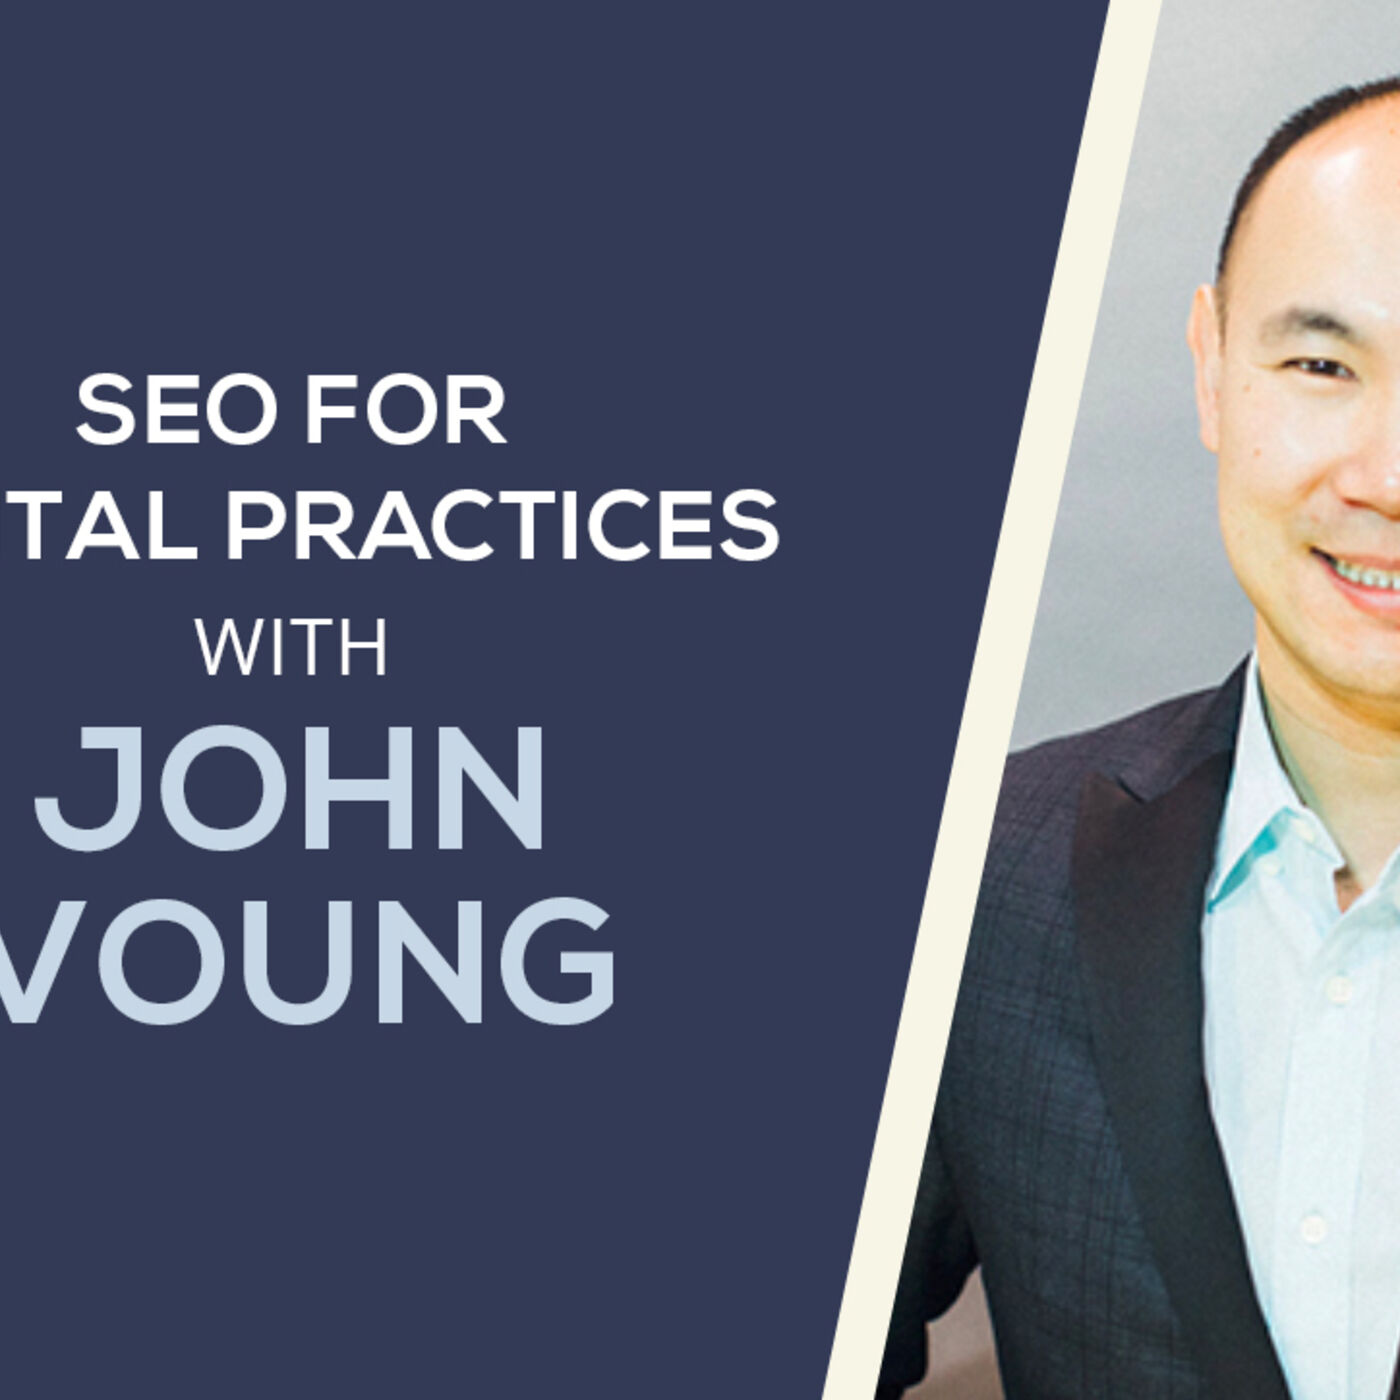 SEO for Dental Practices with John Voung